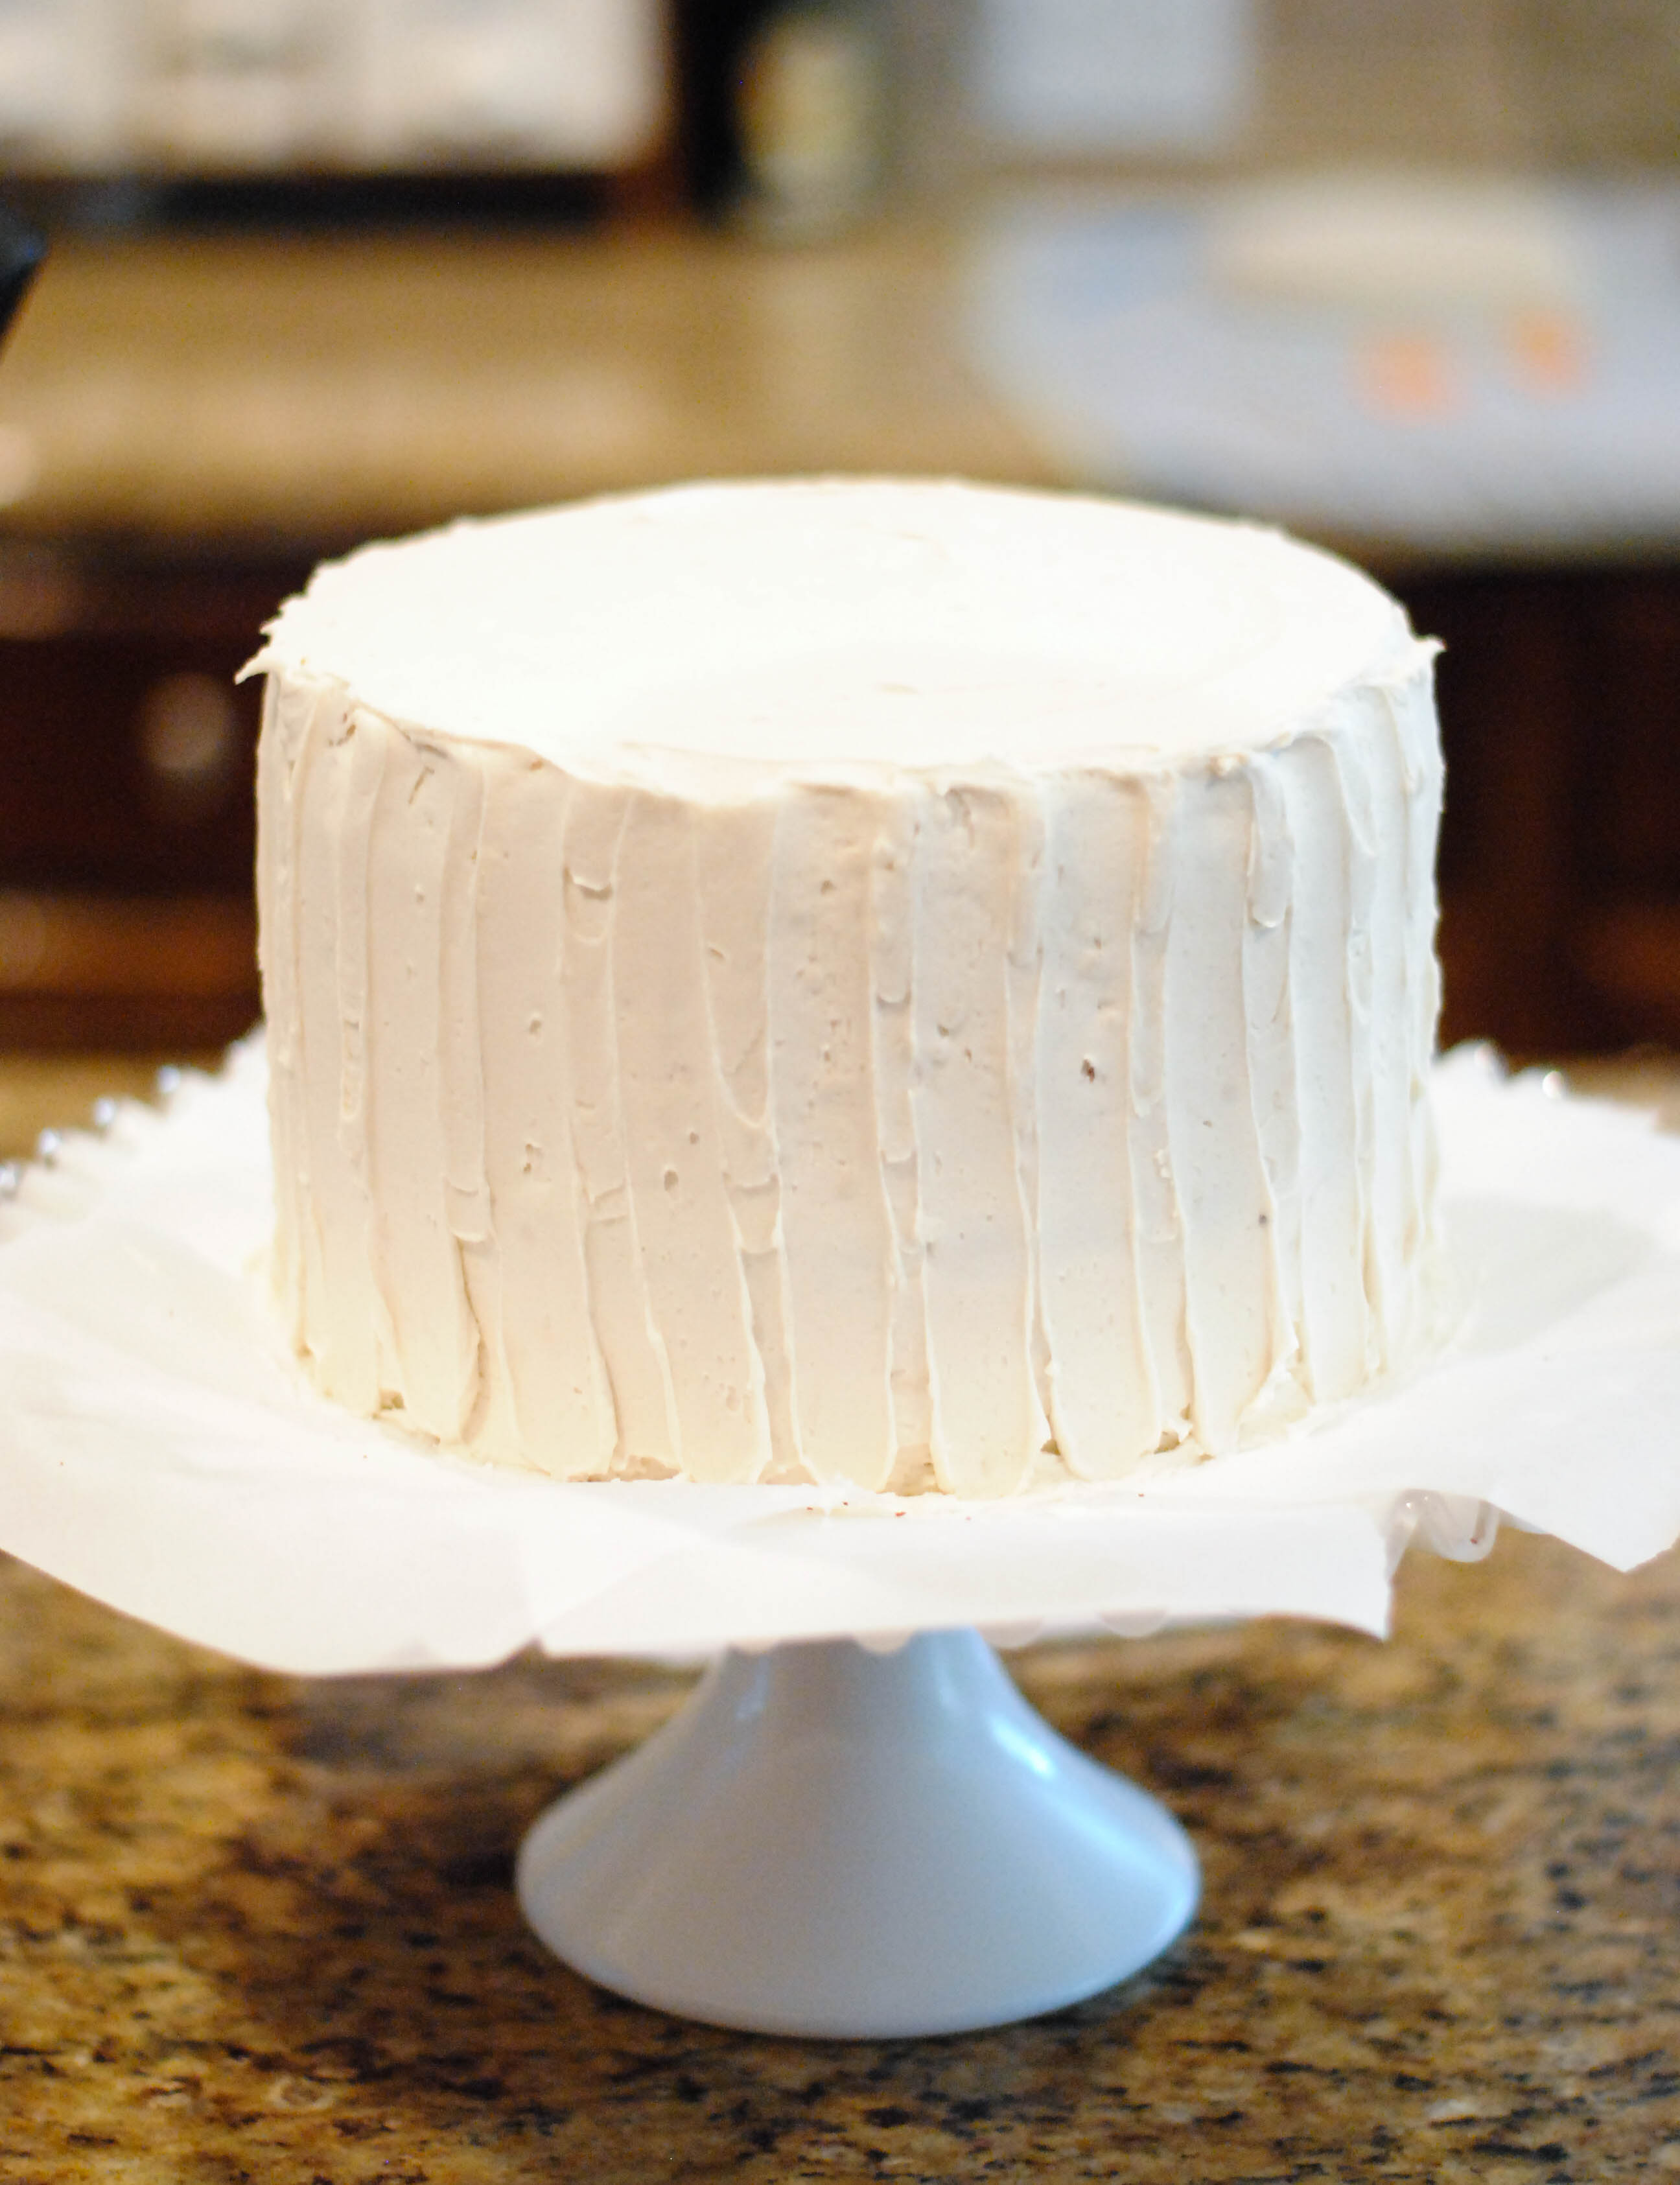 Place The Cake In The Fridge Until You Re Ready To Cut In To It These Kinds Of Cakes Cut More Cleanly When Cold Stick Some Candles In And Celebrate